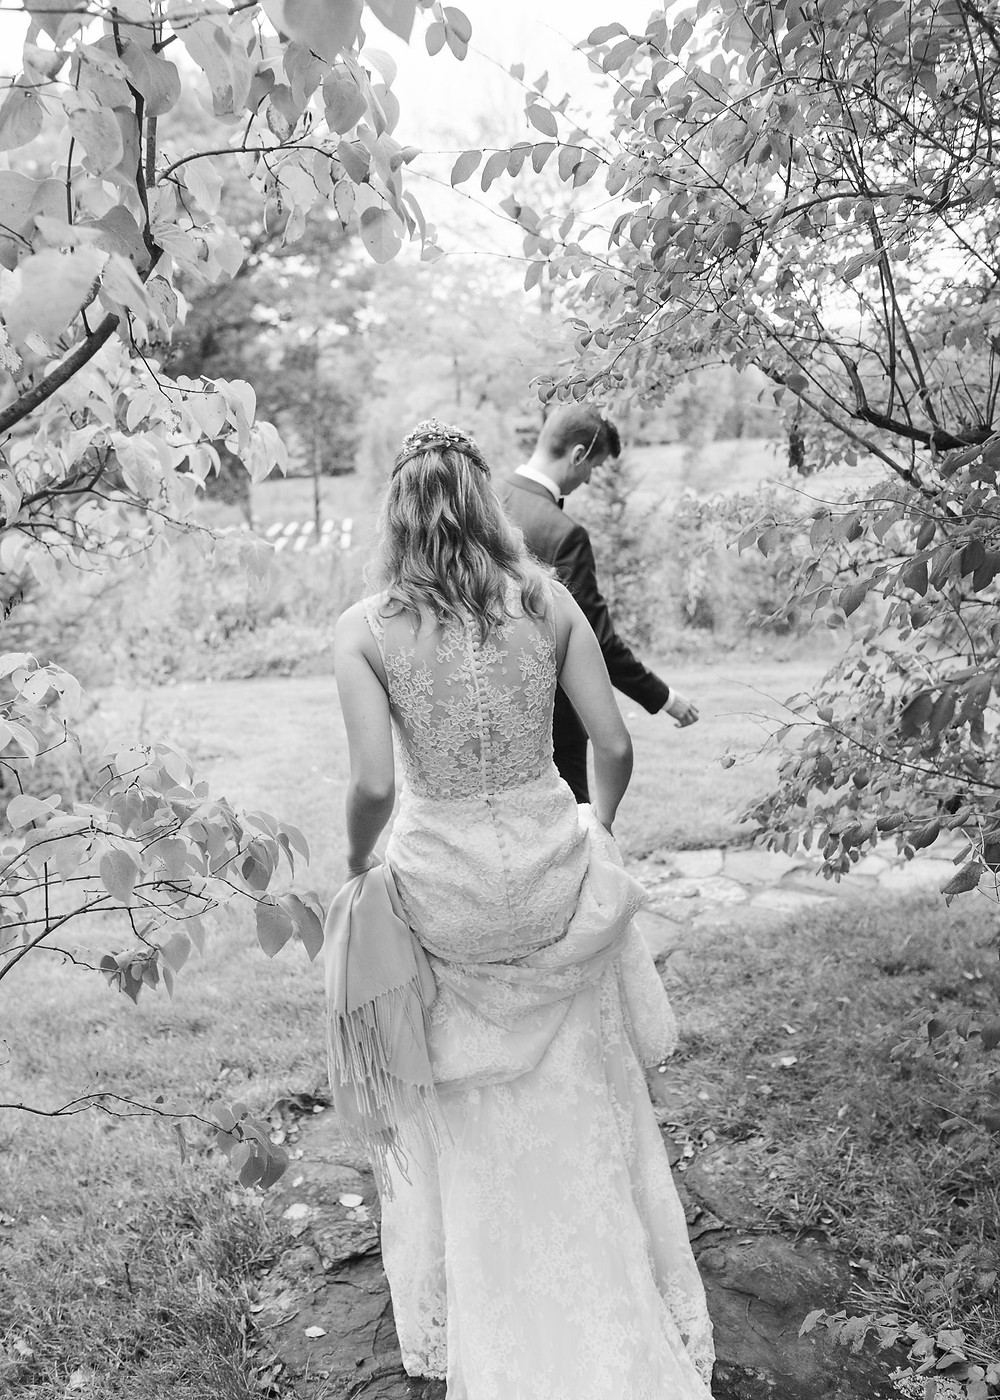 Classic wedding photography in Maine